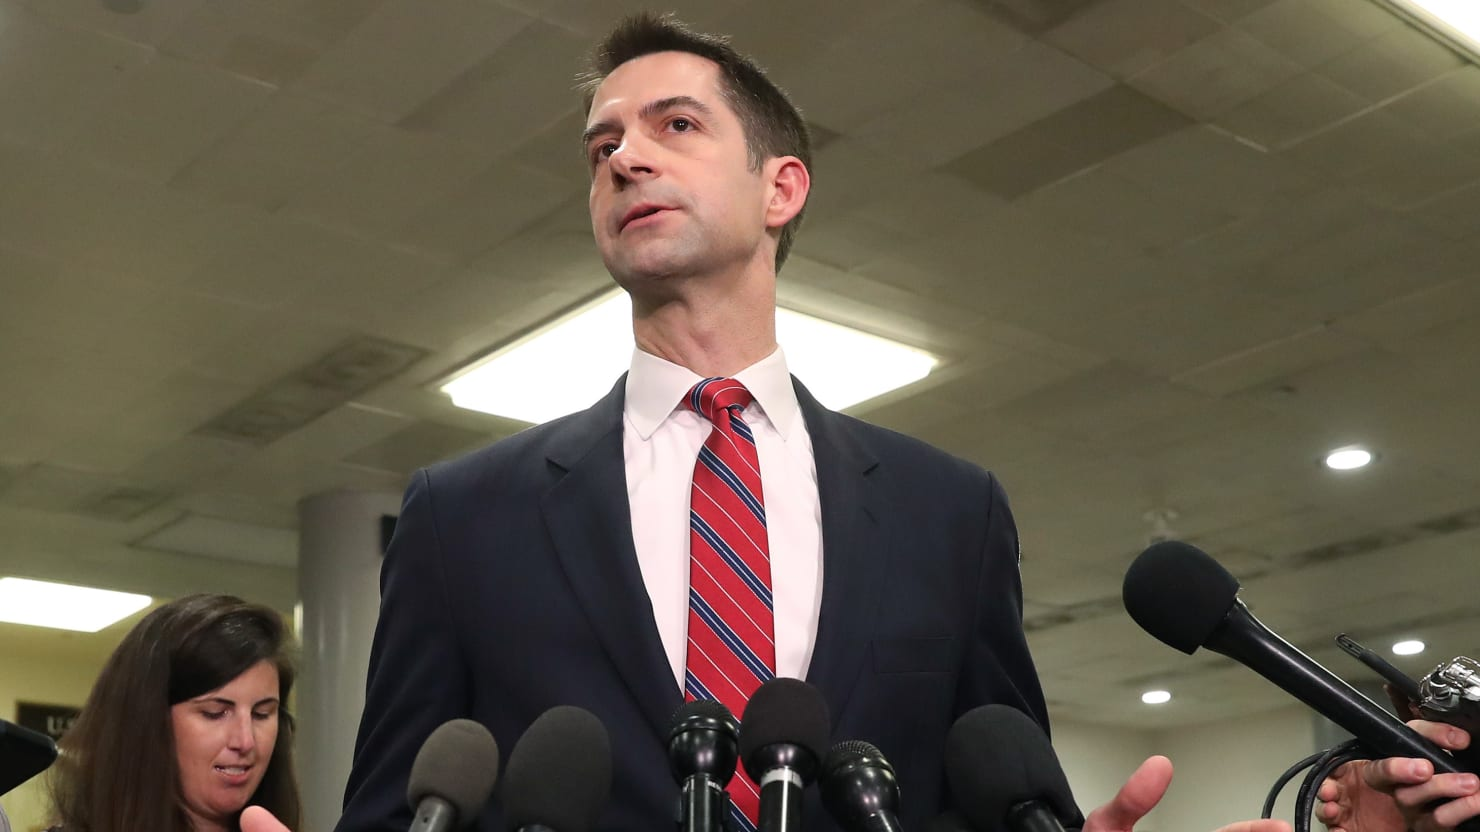 Sen. Tom Cotton Flogs Coronavirus Conspiracy Theory Dismissed by Actual Scientists